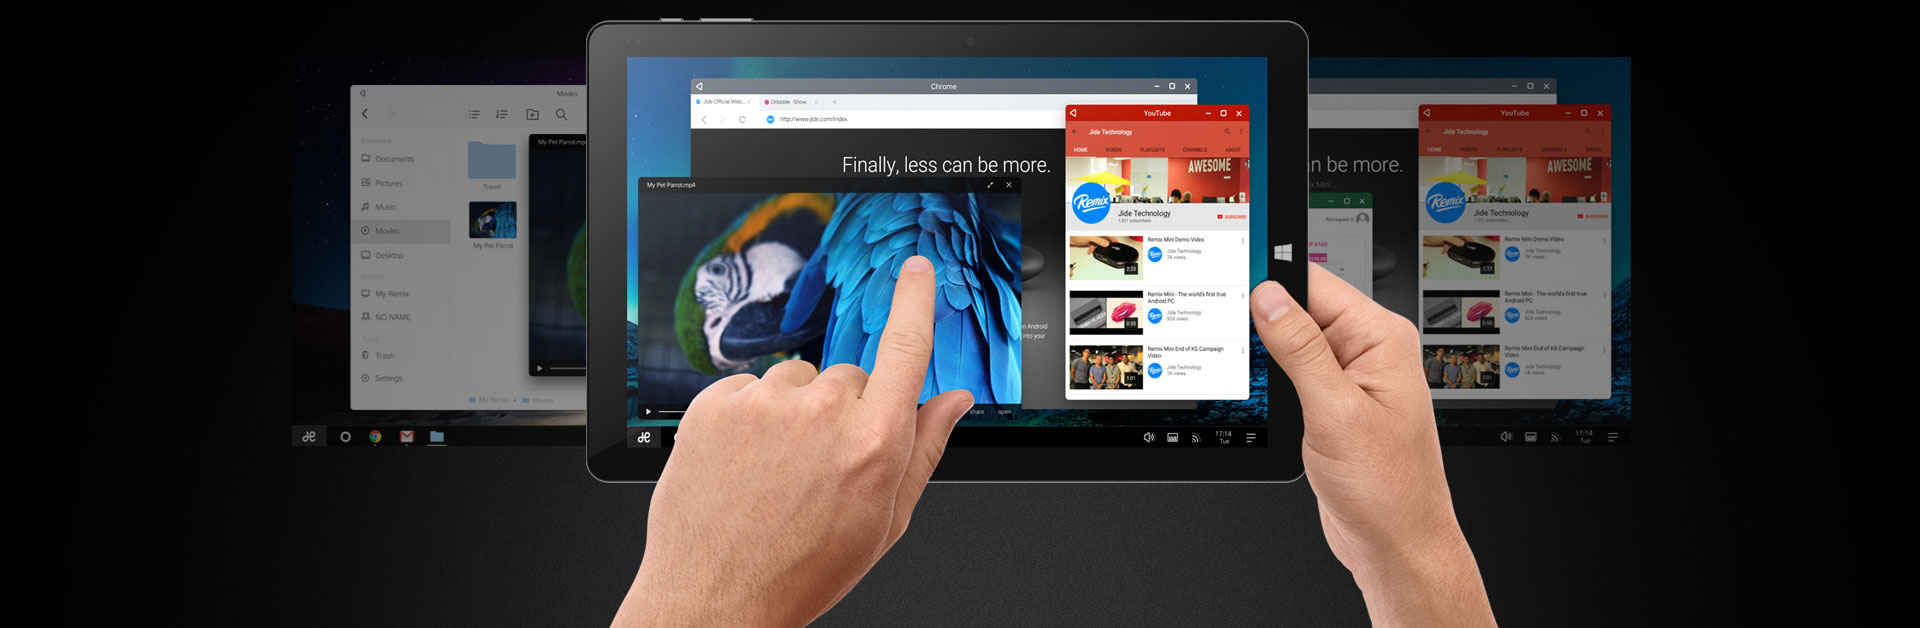 10.8 inch Chuwi Vi10 Plus Remix OS 2-in-1 Tablet